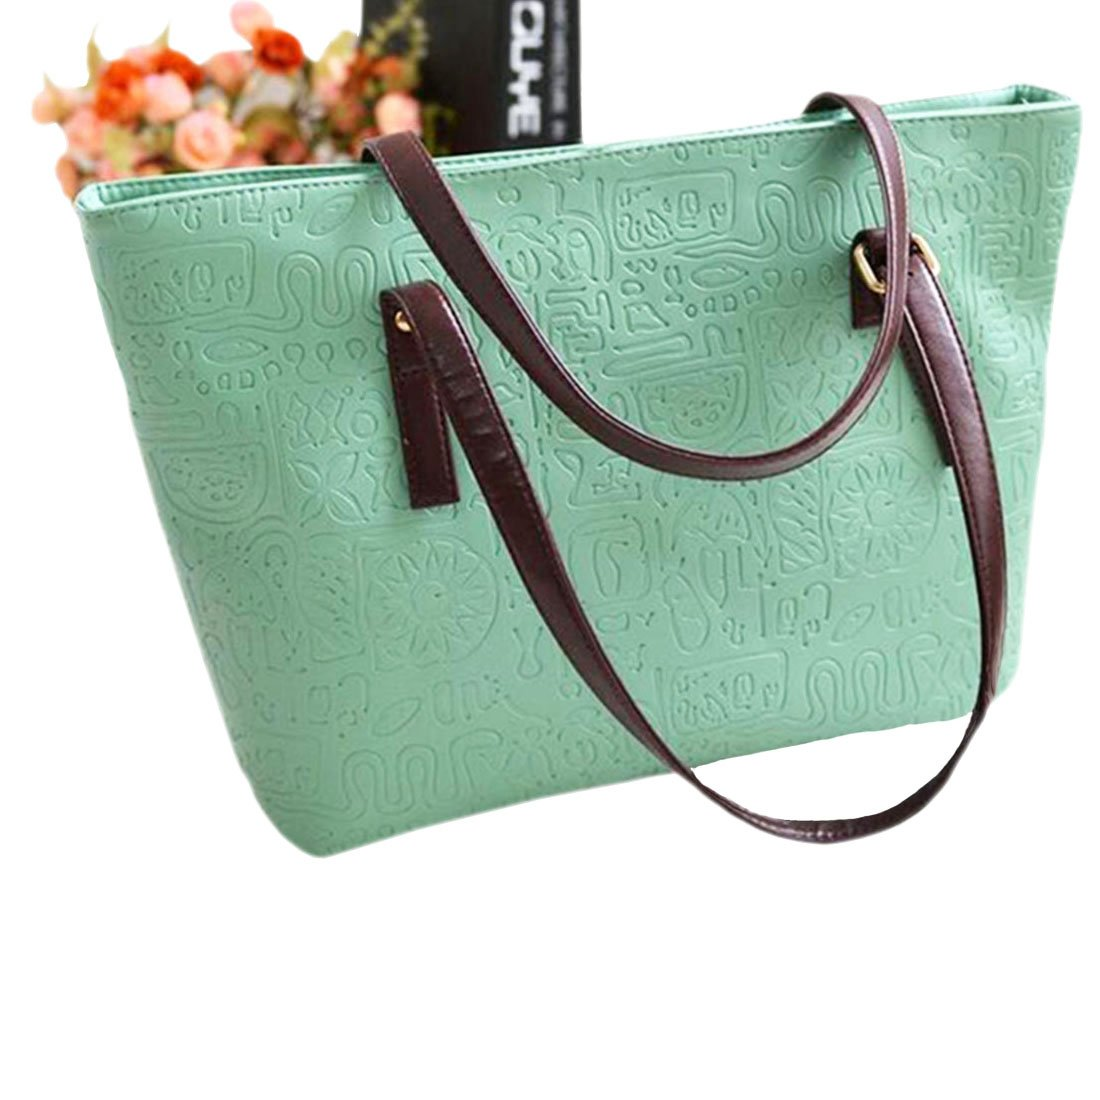 womens Shoulder Bag Casual Big Shoppingbags Tote Handbag Work Bag Travel Bags for Women Girls Ladies (Light green)